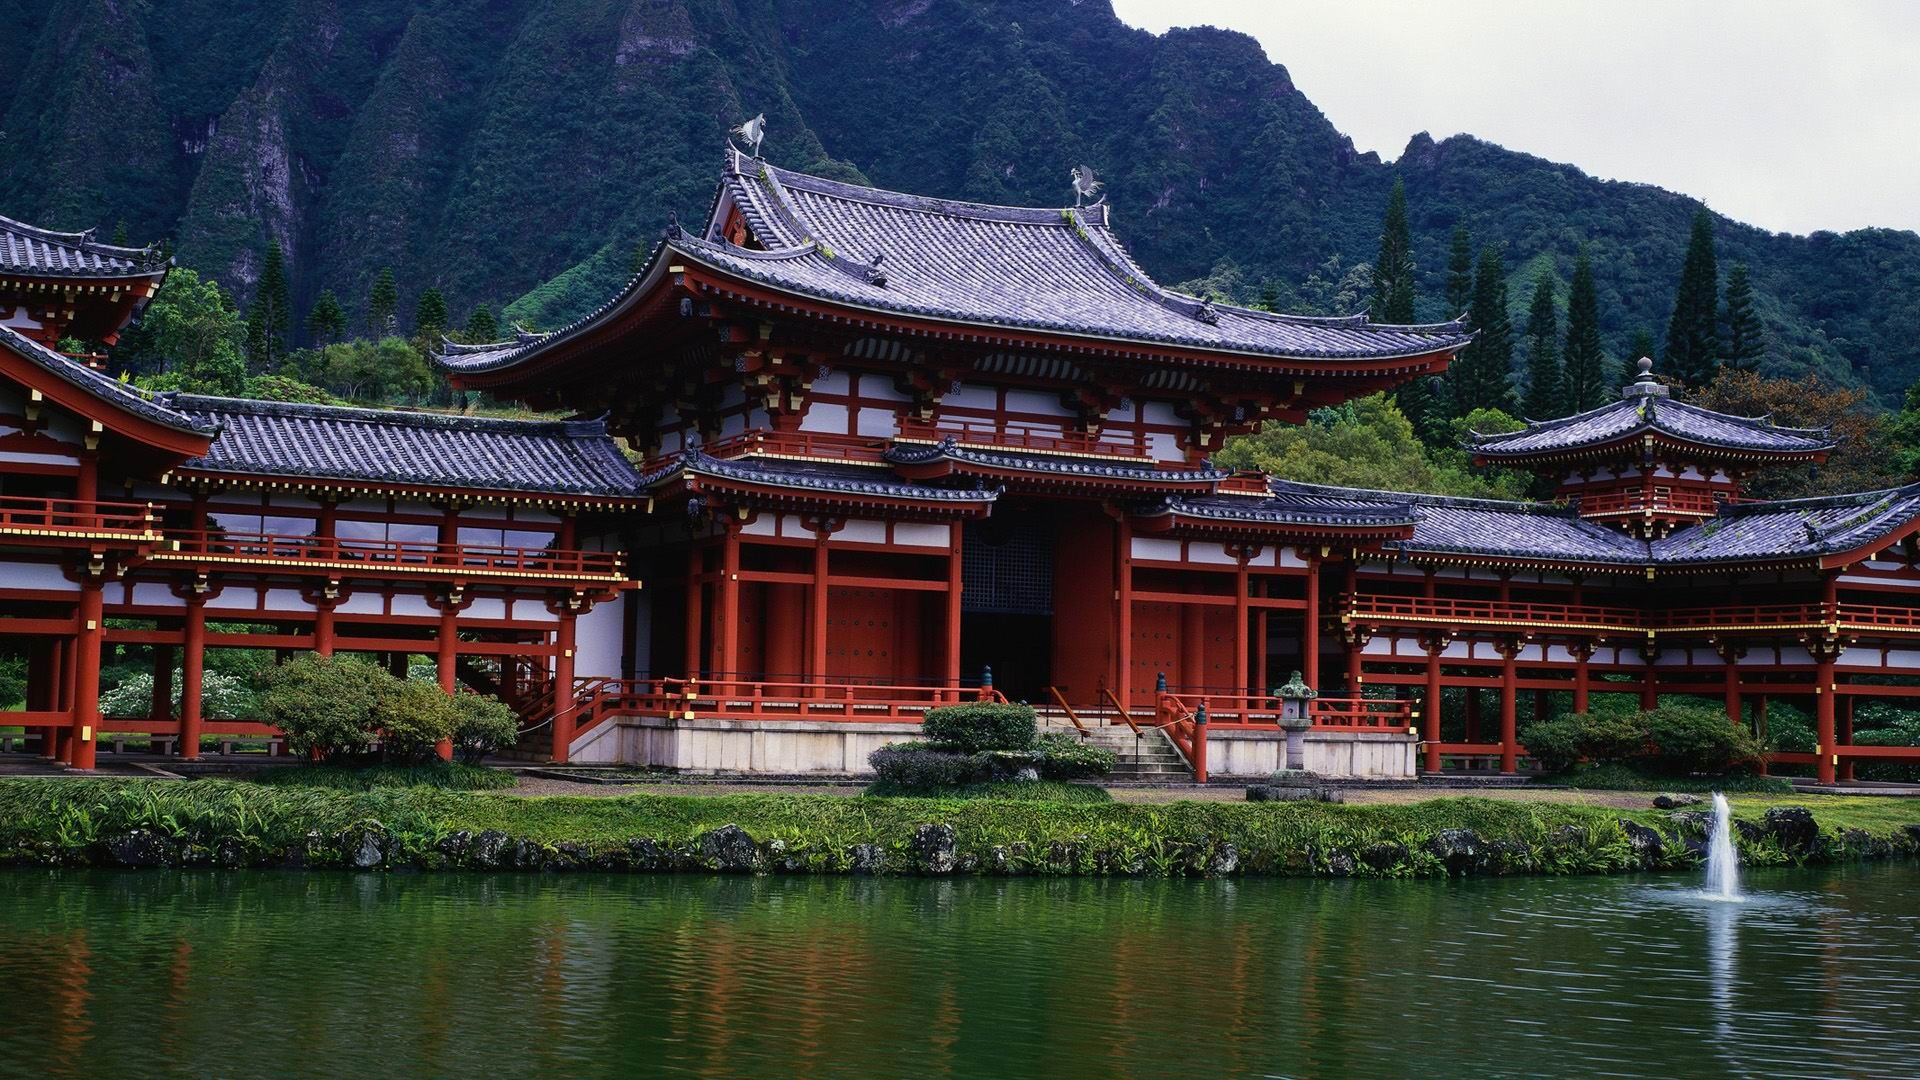 temple-Japan Landscape Wallpaper